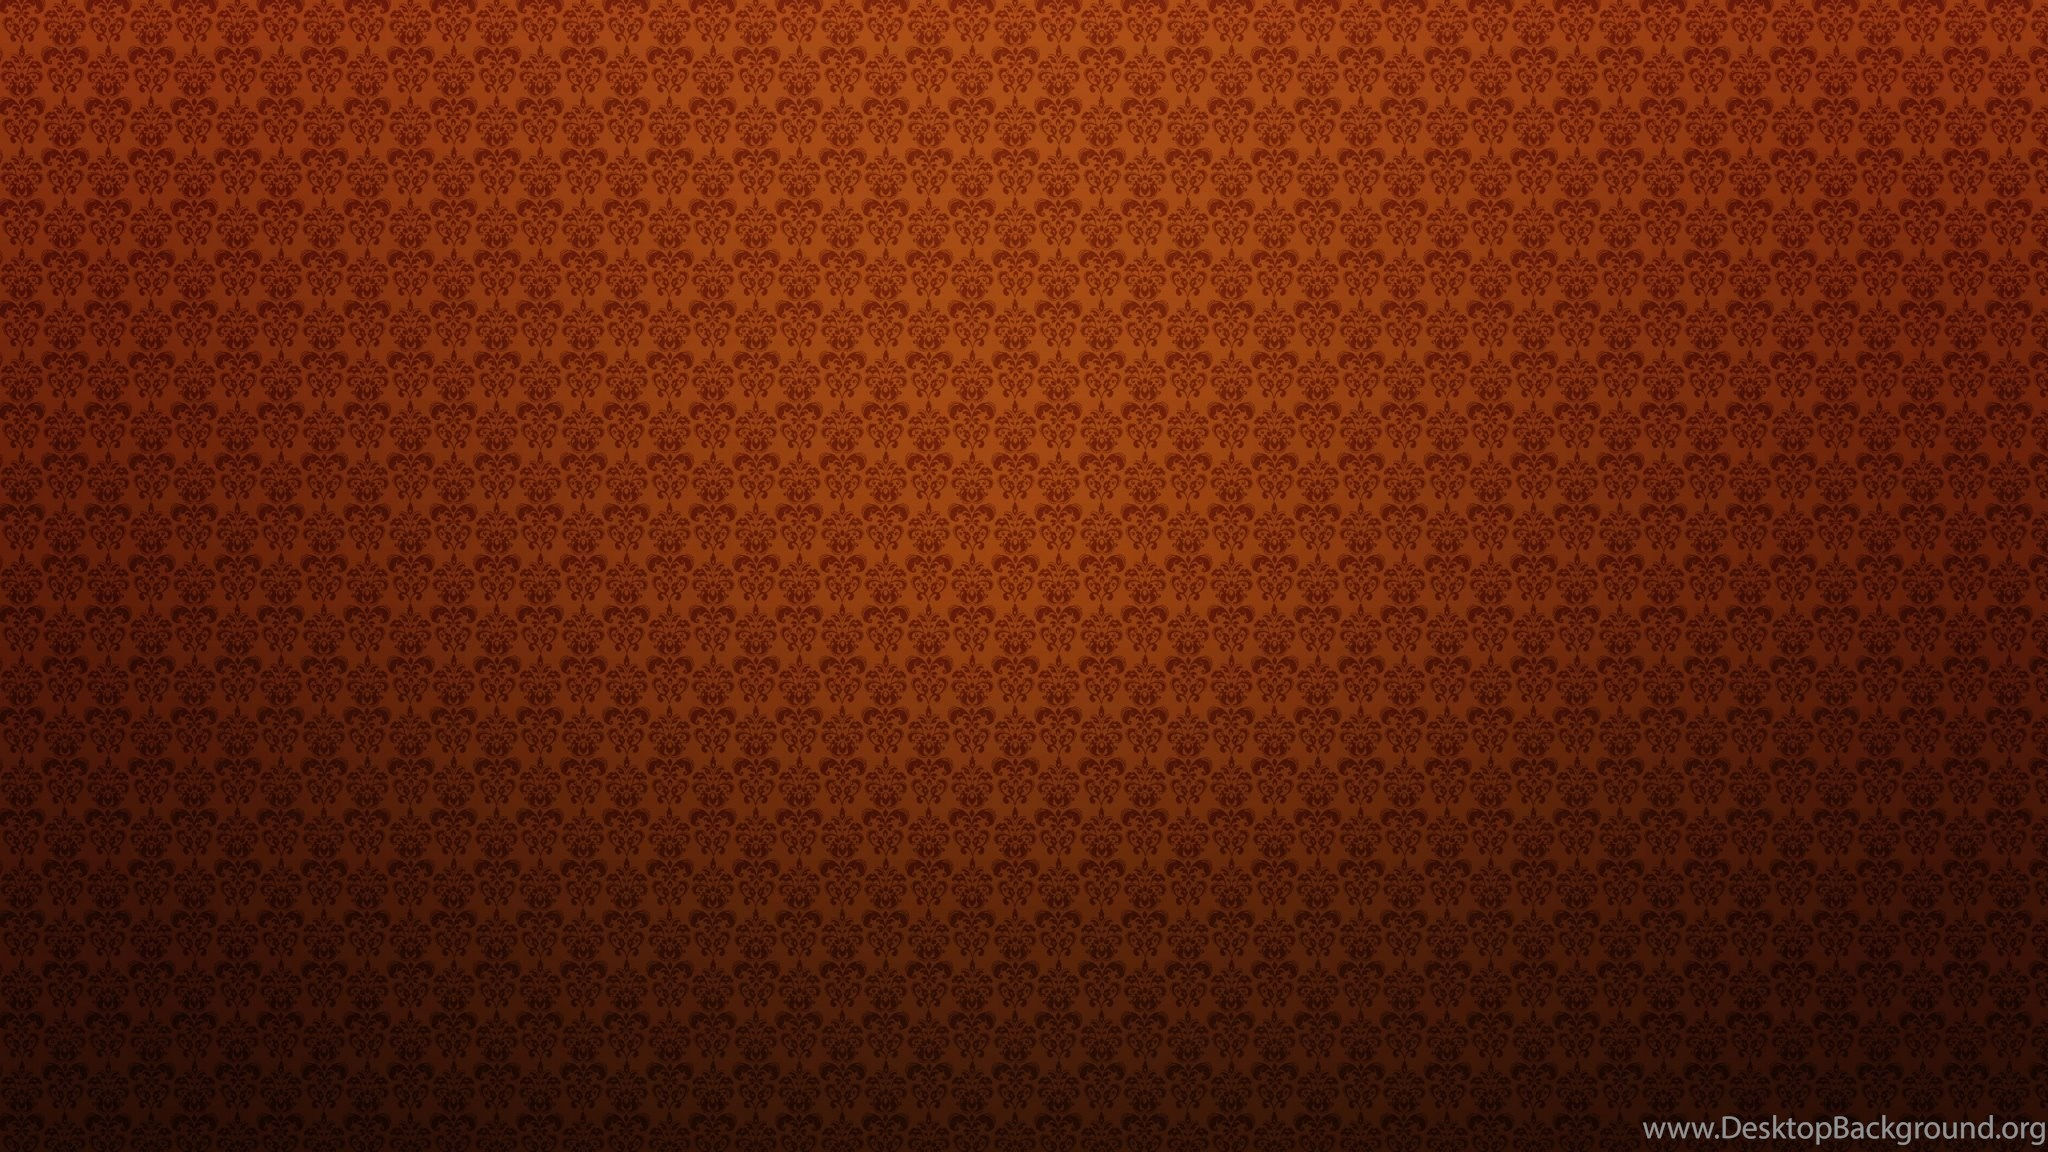 Download Wallpapers 2048x1152 Patterns, Light, Colorful, Texture ...  Desktop Background